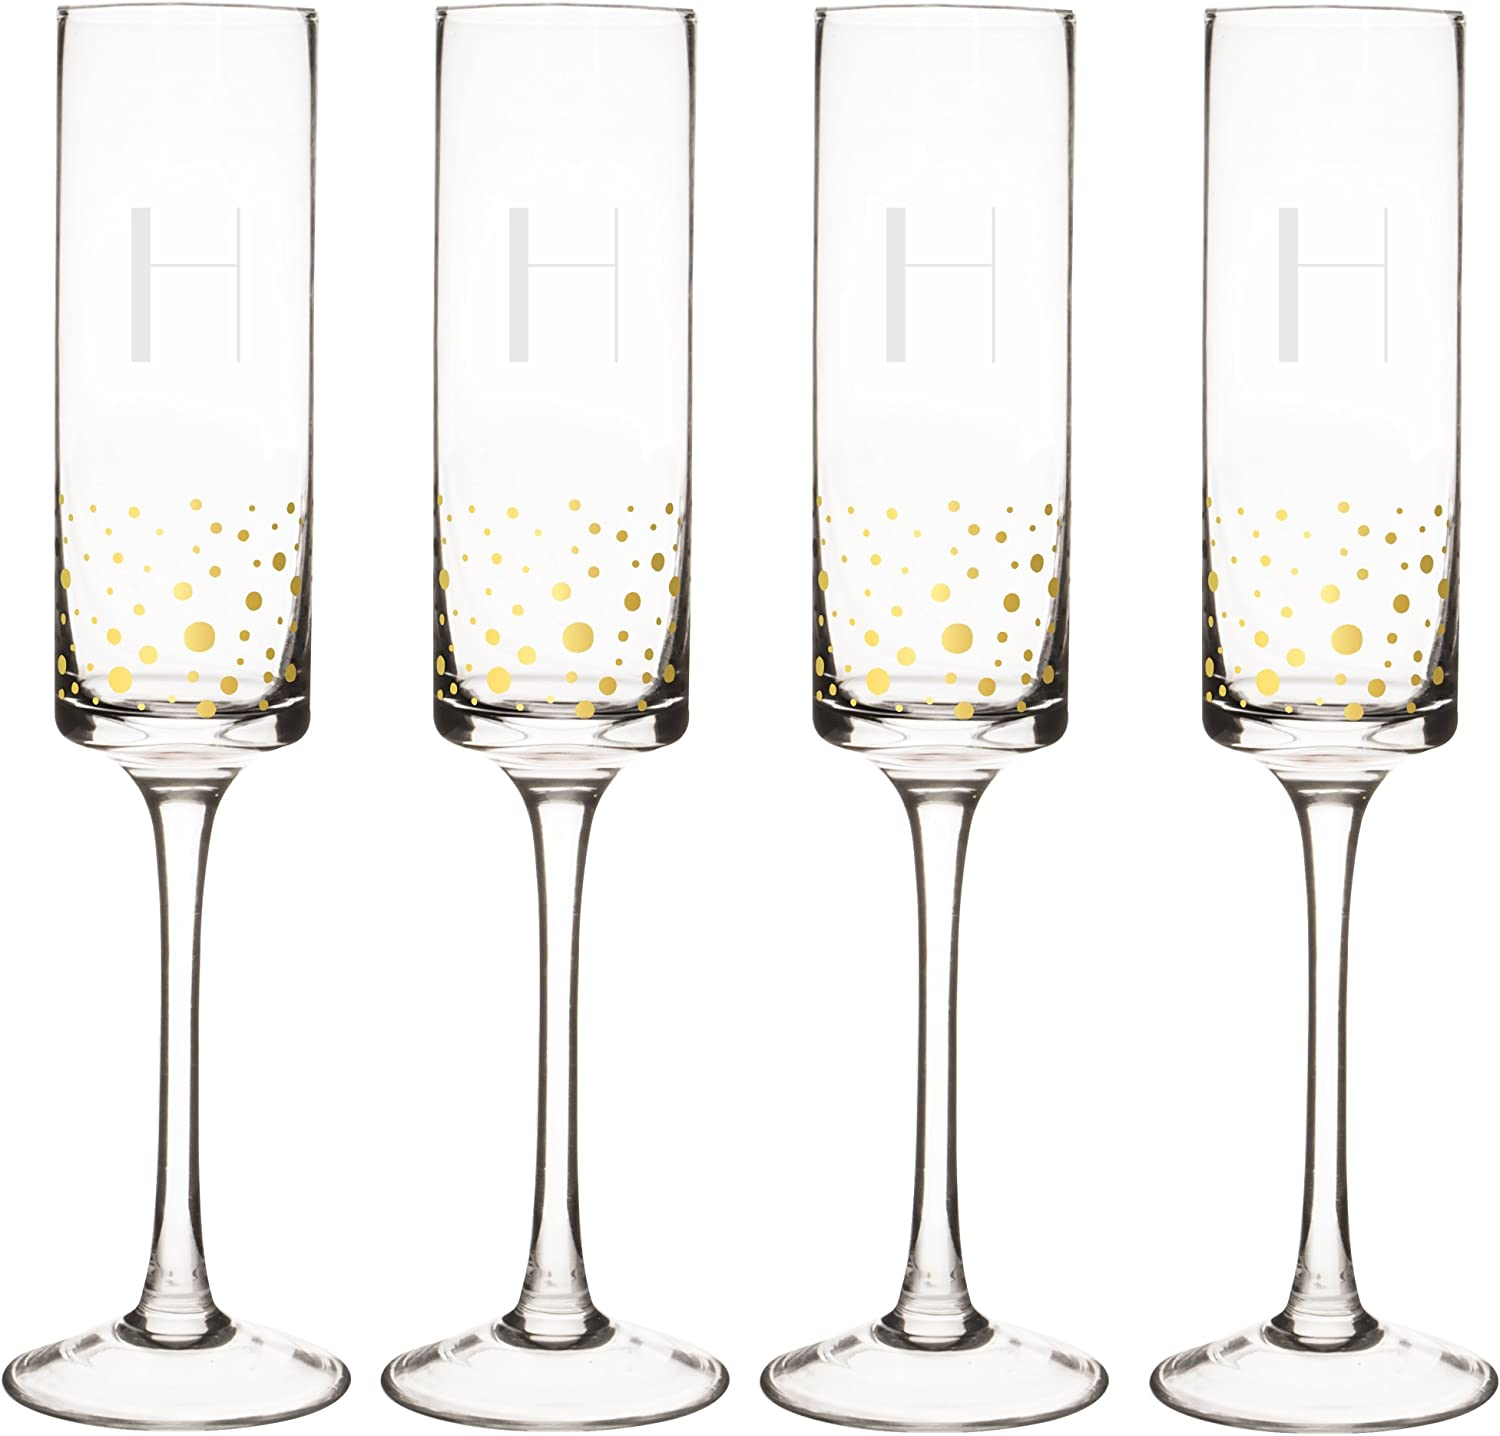 Cathy's Concepts GD3668-4-H Personalized gold Dot Contemporary Champagne Flutes (Set of 4), Clear